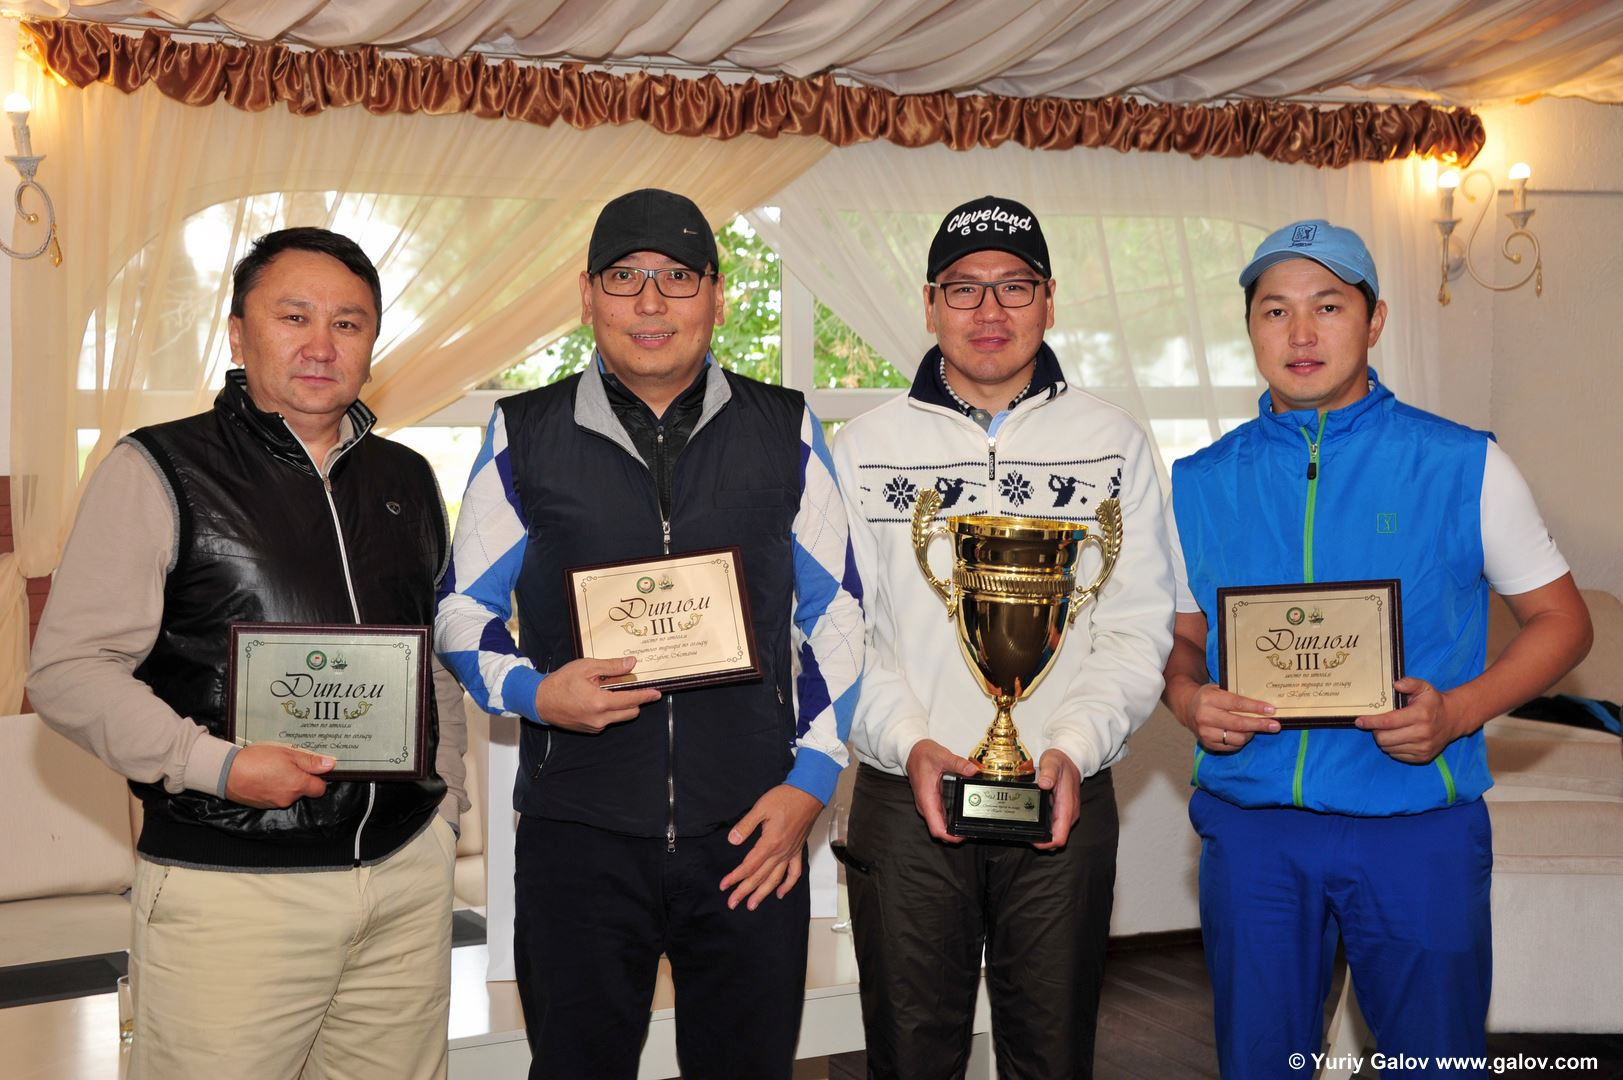 Open tournament golf on the cup of Astana 2015